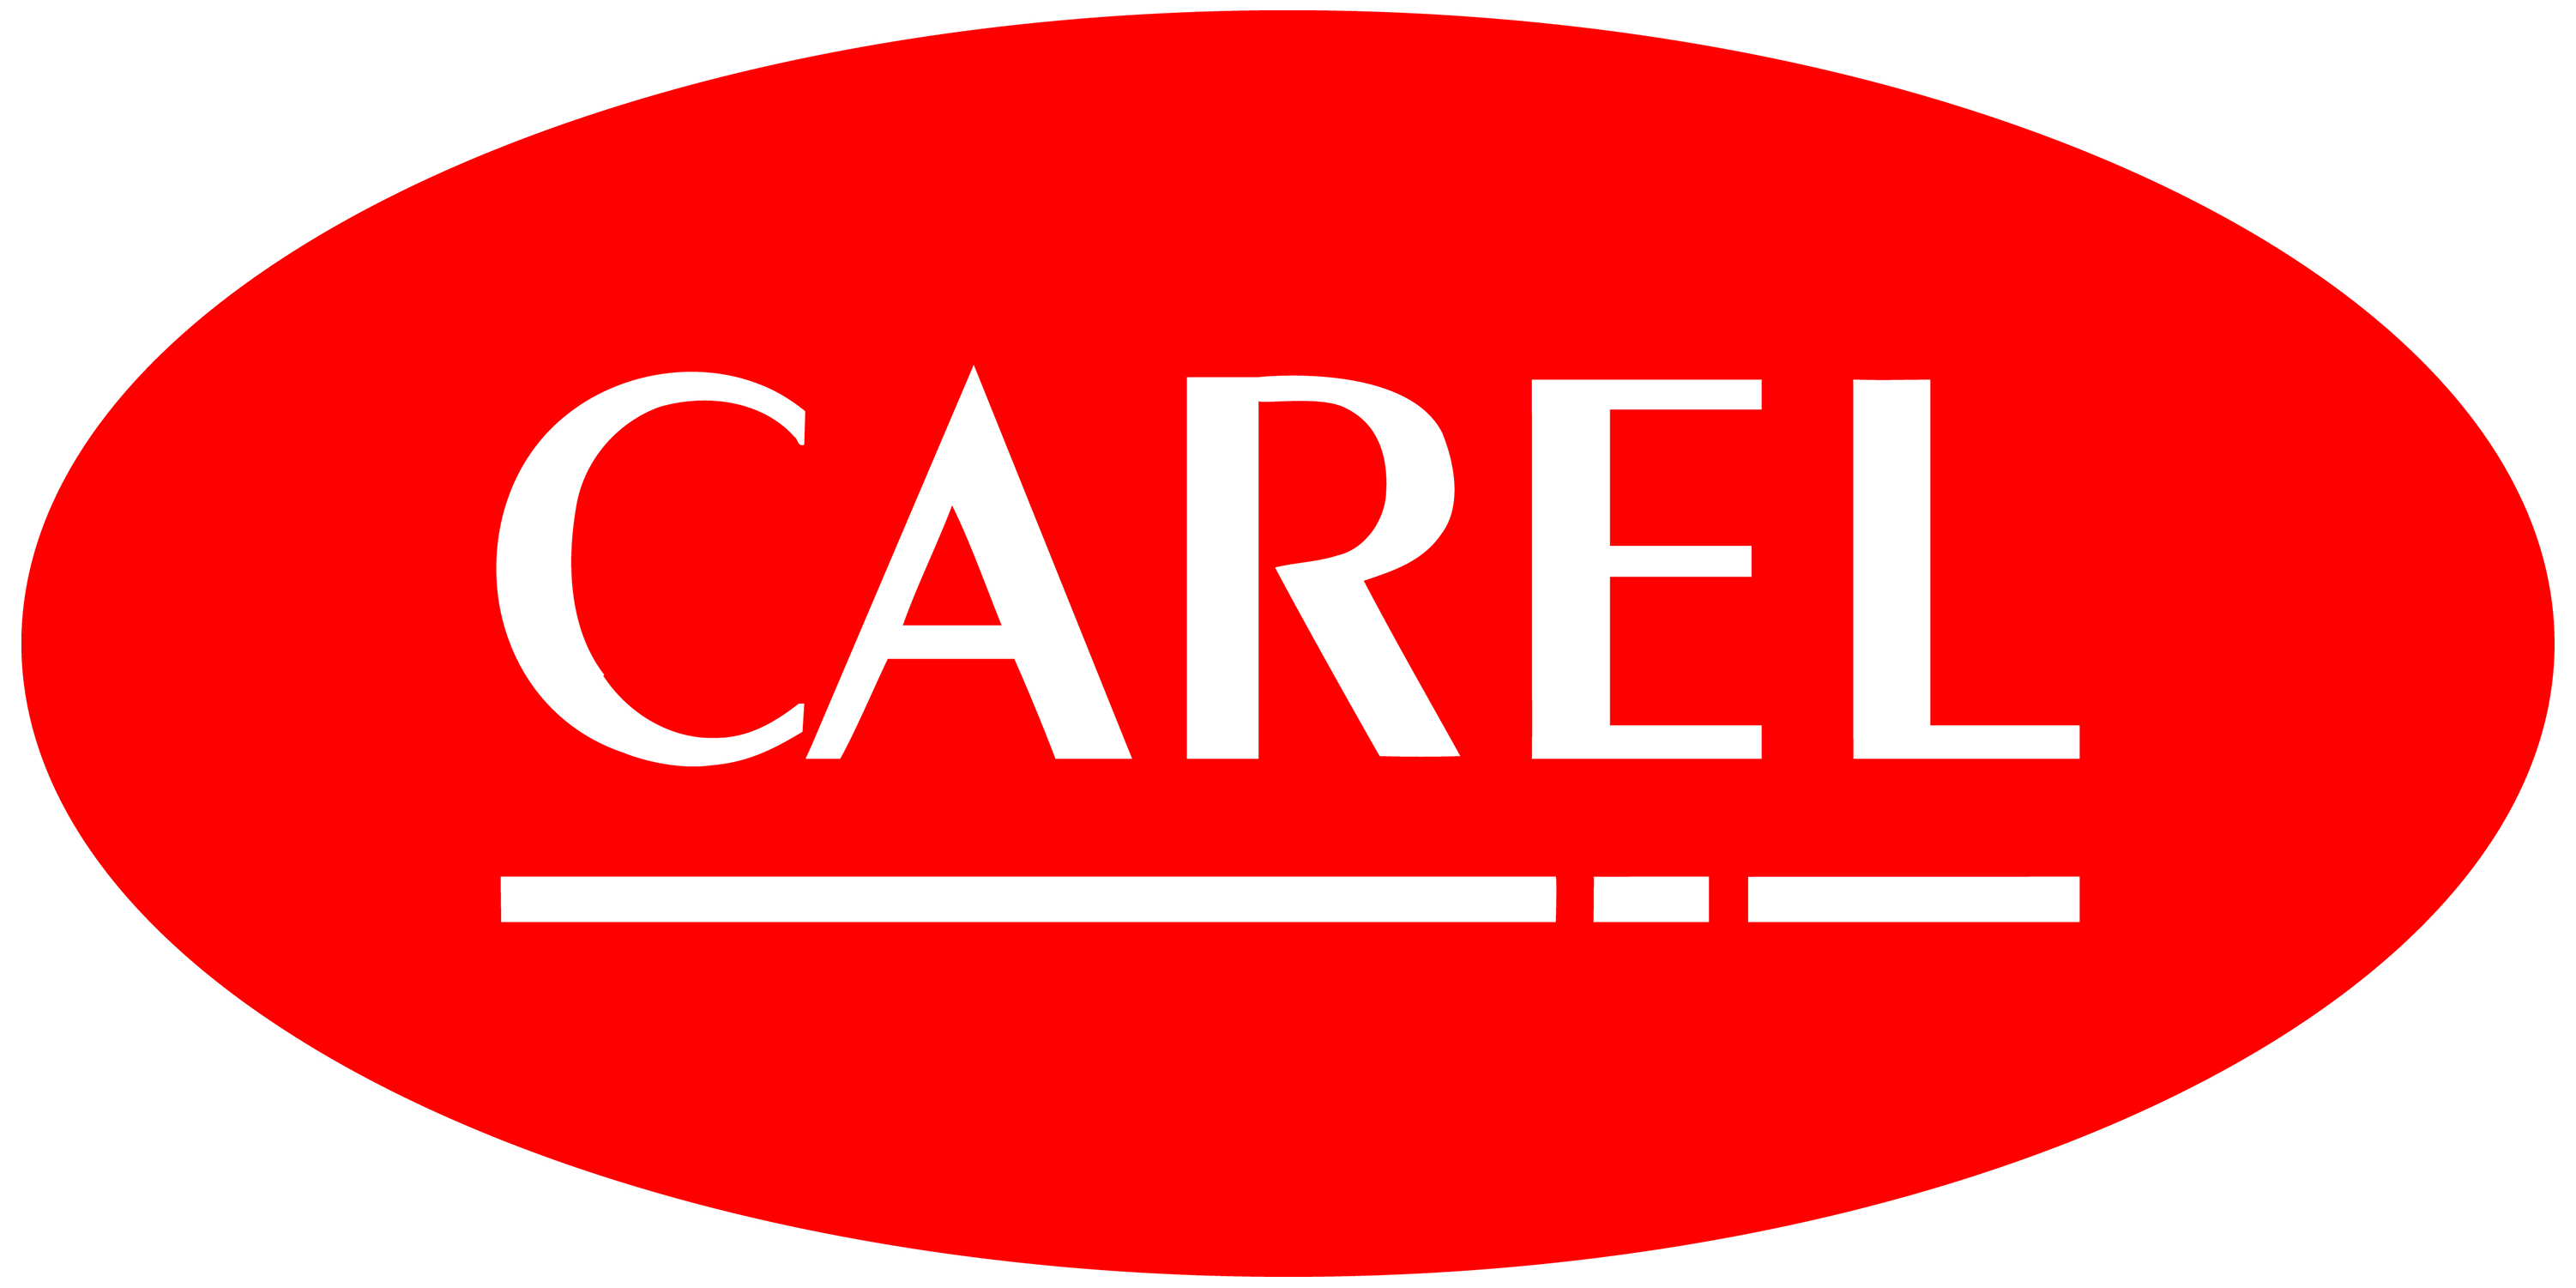 CAREL - Legal & Compliance